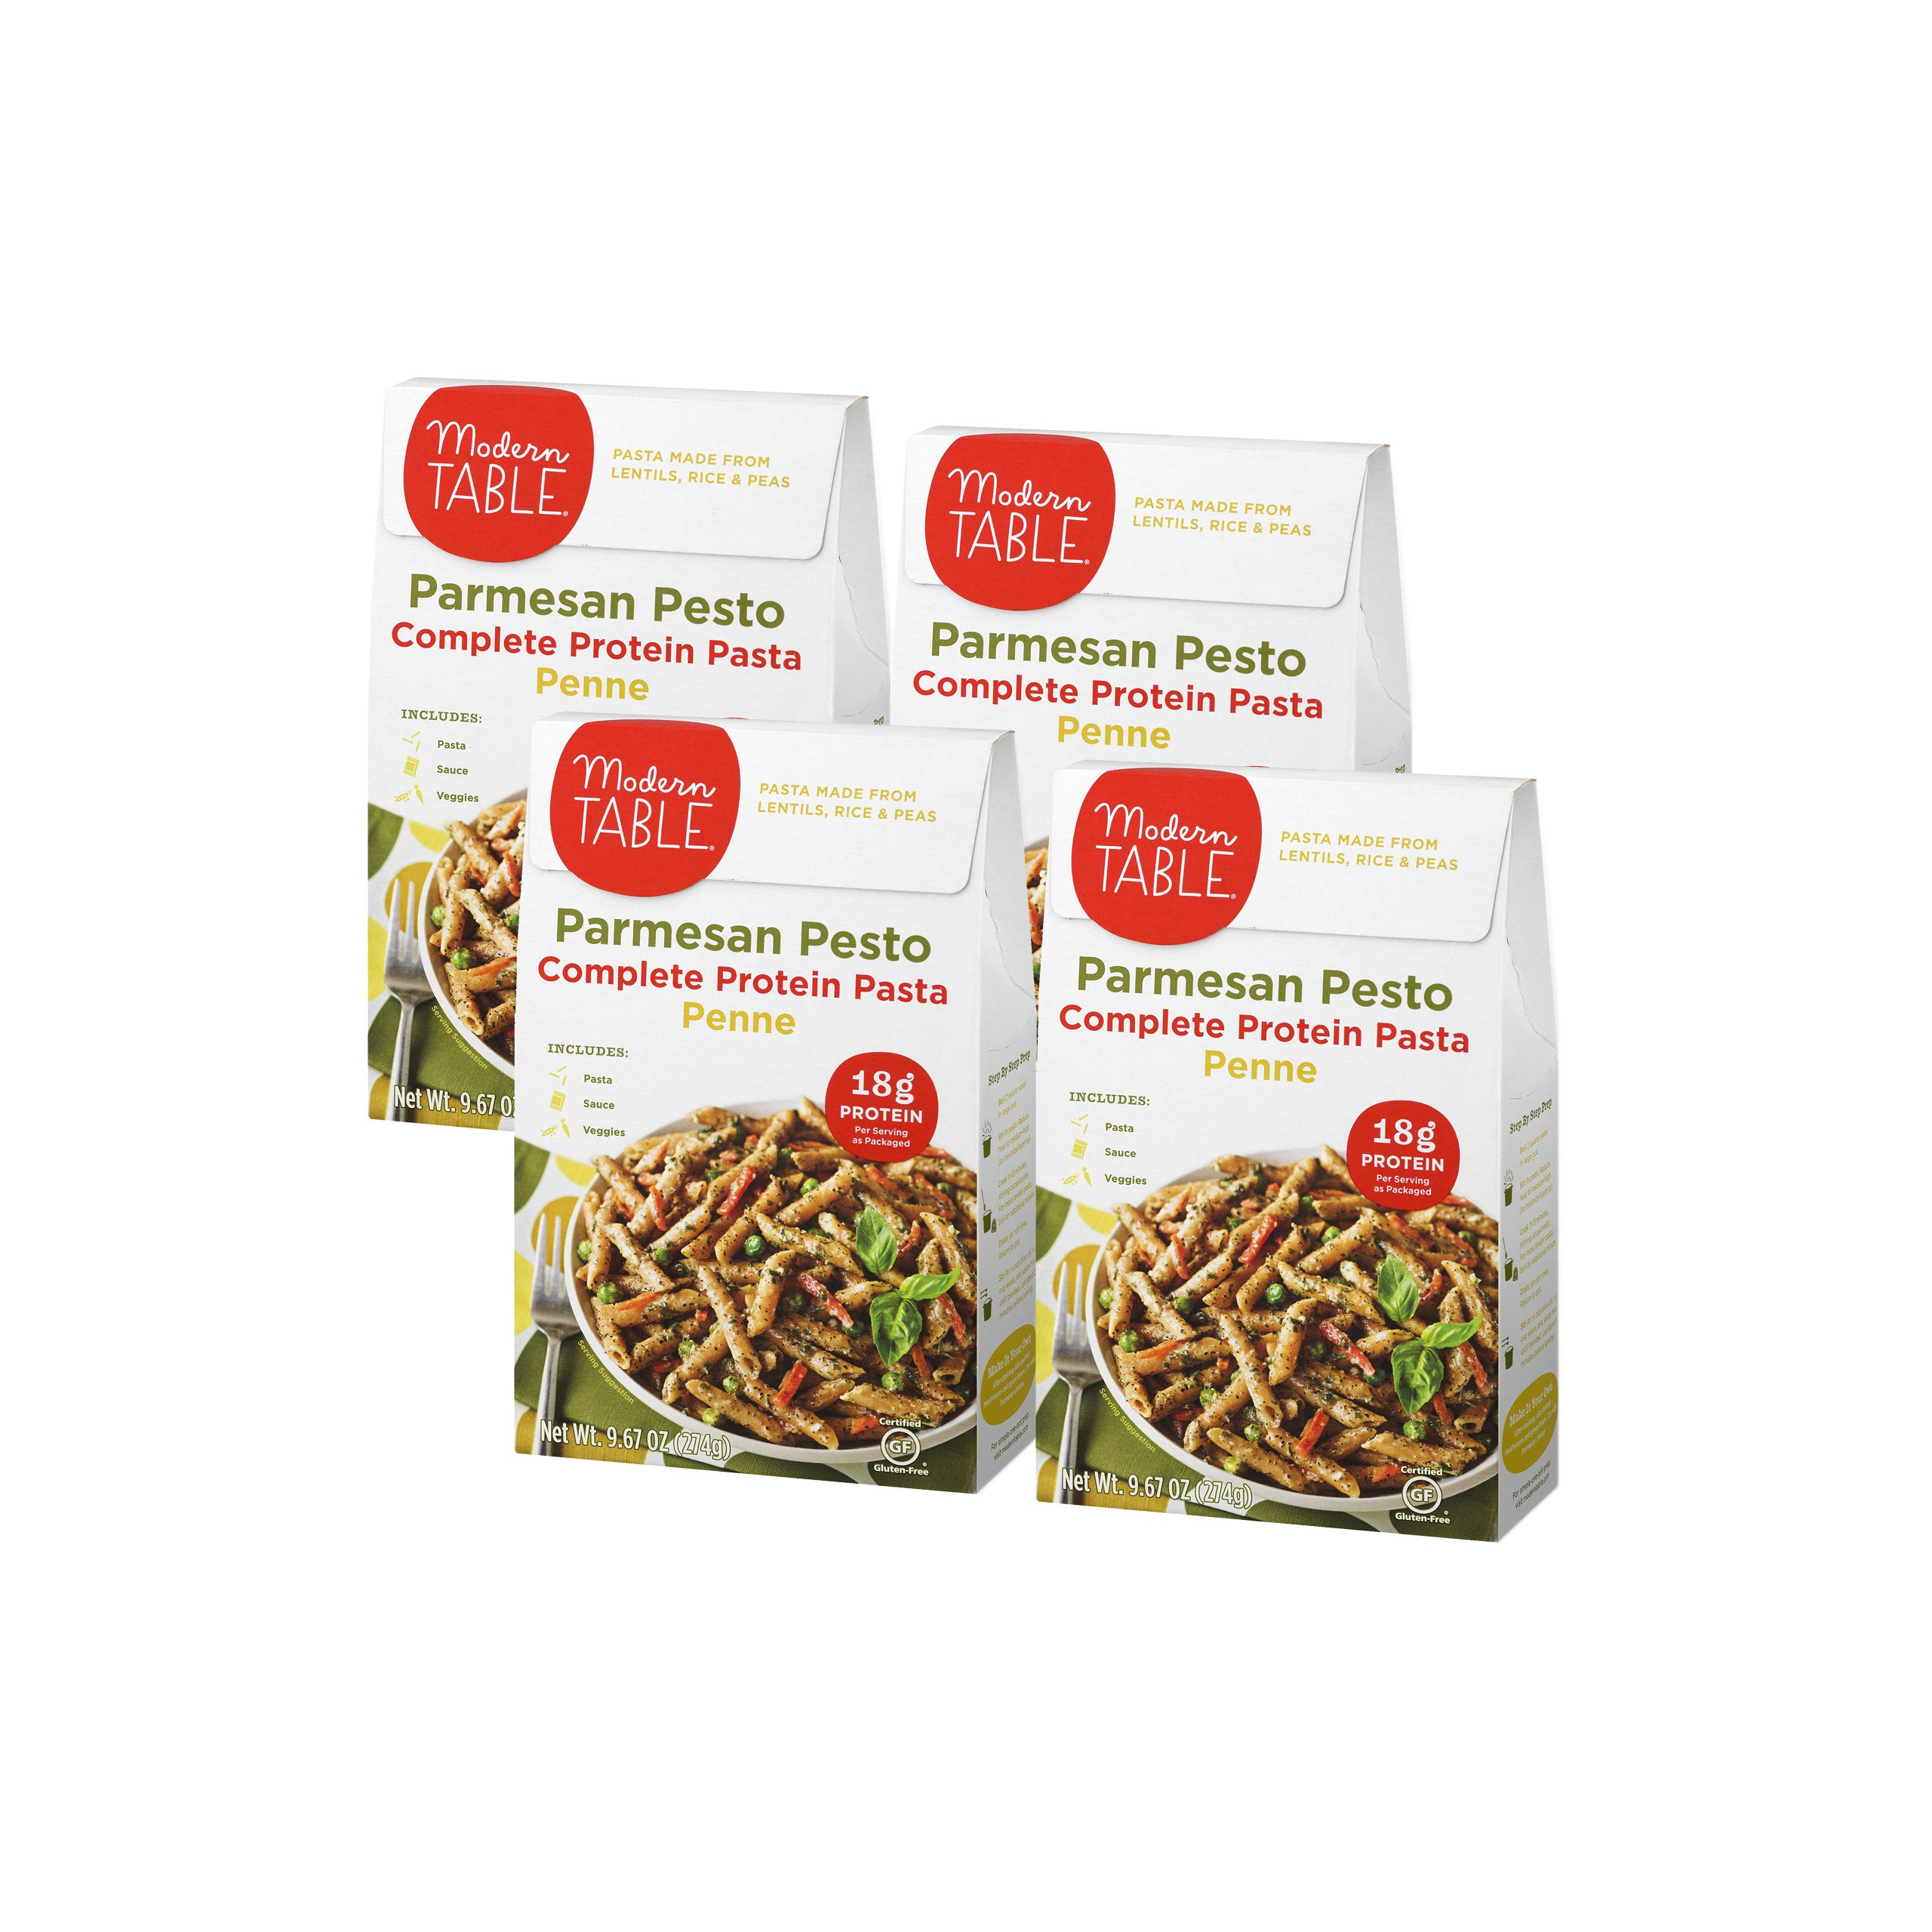 Modern Table Gluten Free, Complete Protein Lentil Pasta Meal Kit, Parmesan Pesto, 4 Count by Modern Table